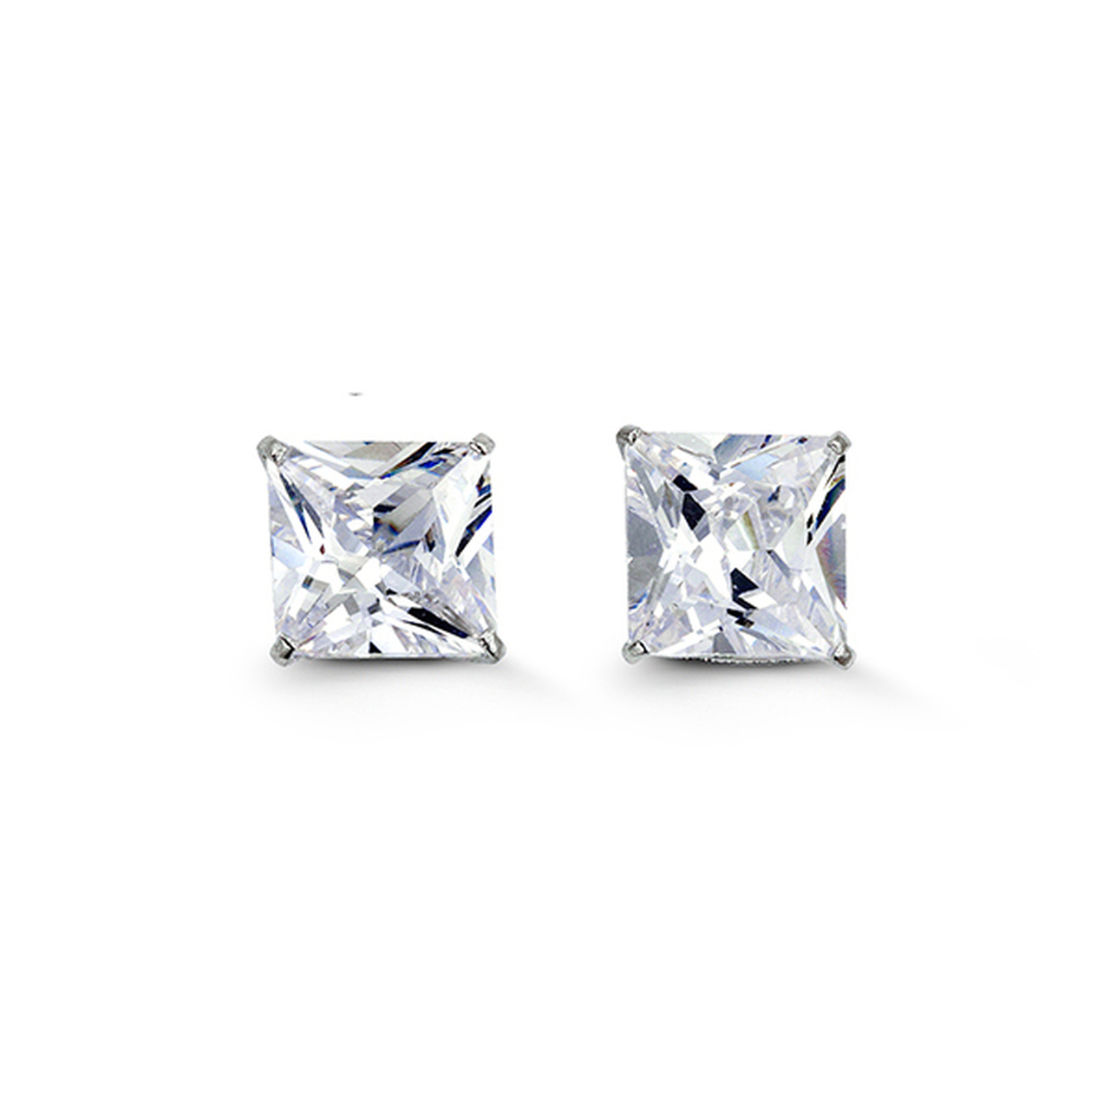 White Gold Princess Cut Cubic Zirconia Stud Earrings